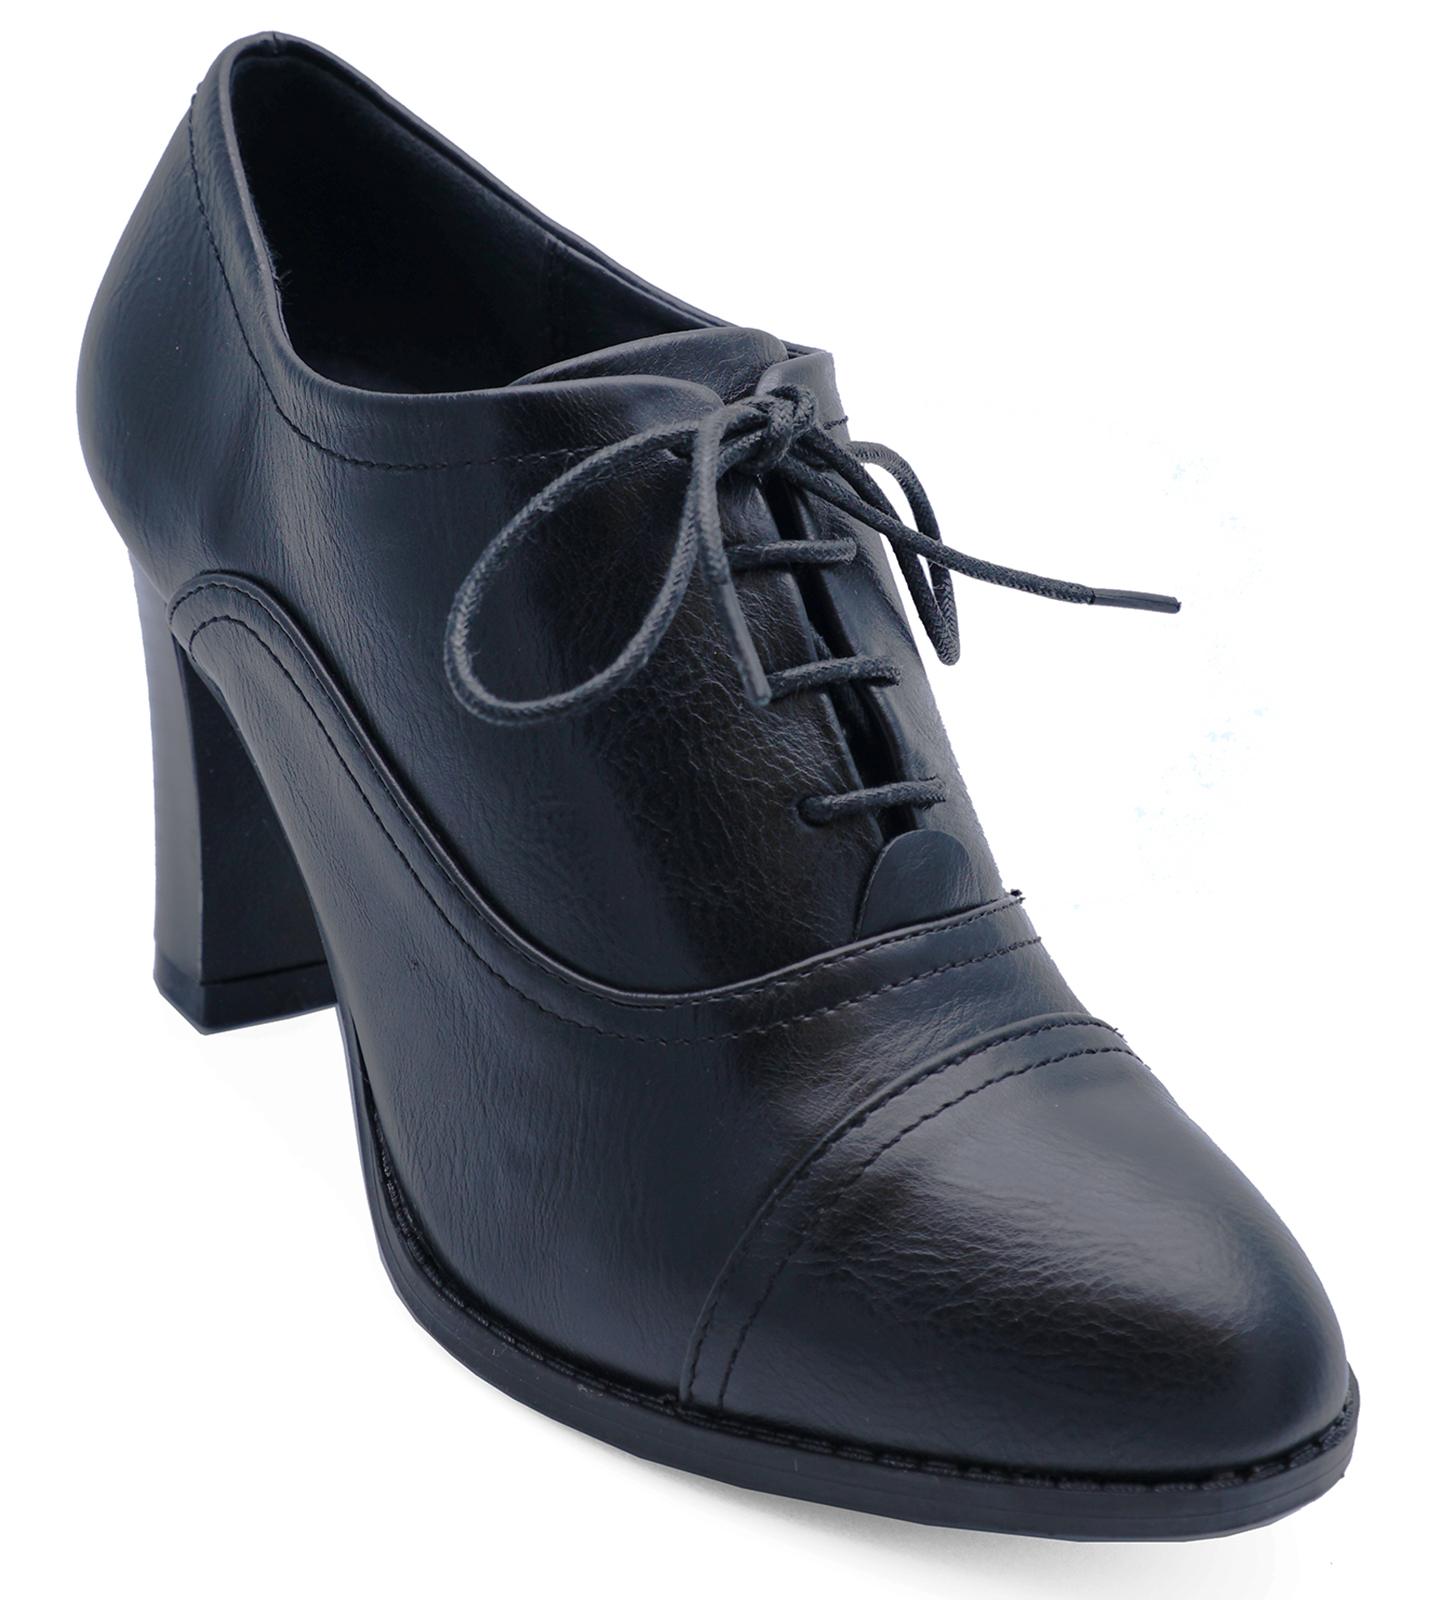 Details about WOMENS BLACK LACE-UP BROGUE ANKLE BOOTS SMART WORK COMFY  SHOES SIZE UK 5 23173452cb